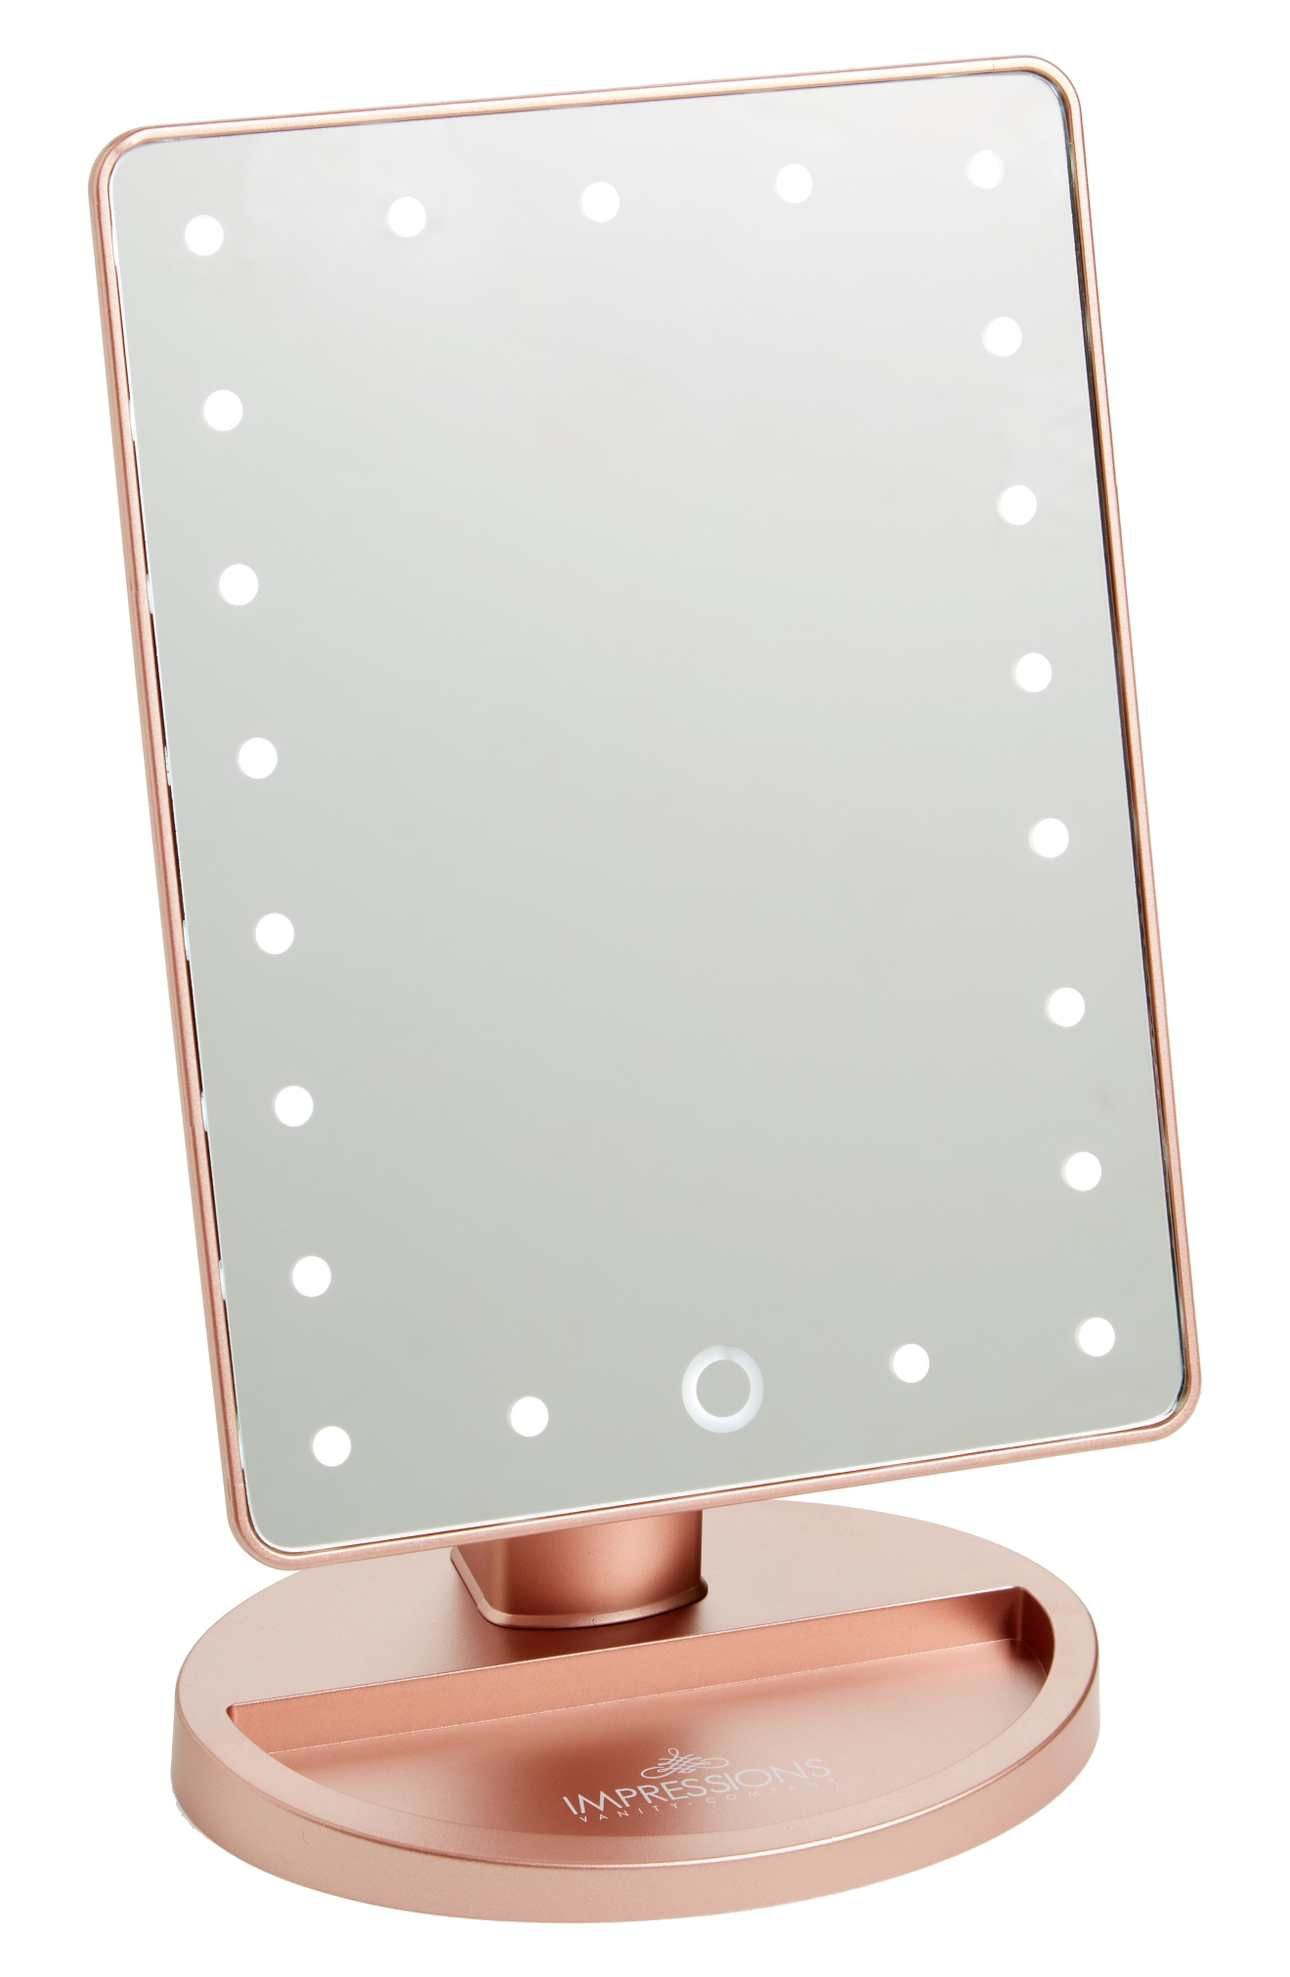 separation shoes db3ef 4bb3e Product Image 1 Light Up Vanity, Gold Vanity Mirror, Lighted Vanity Mirror,  Makeup